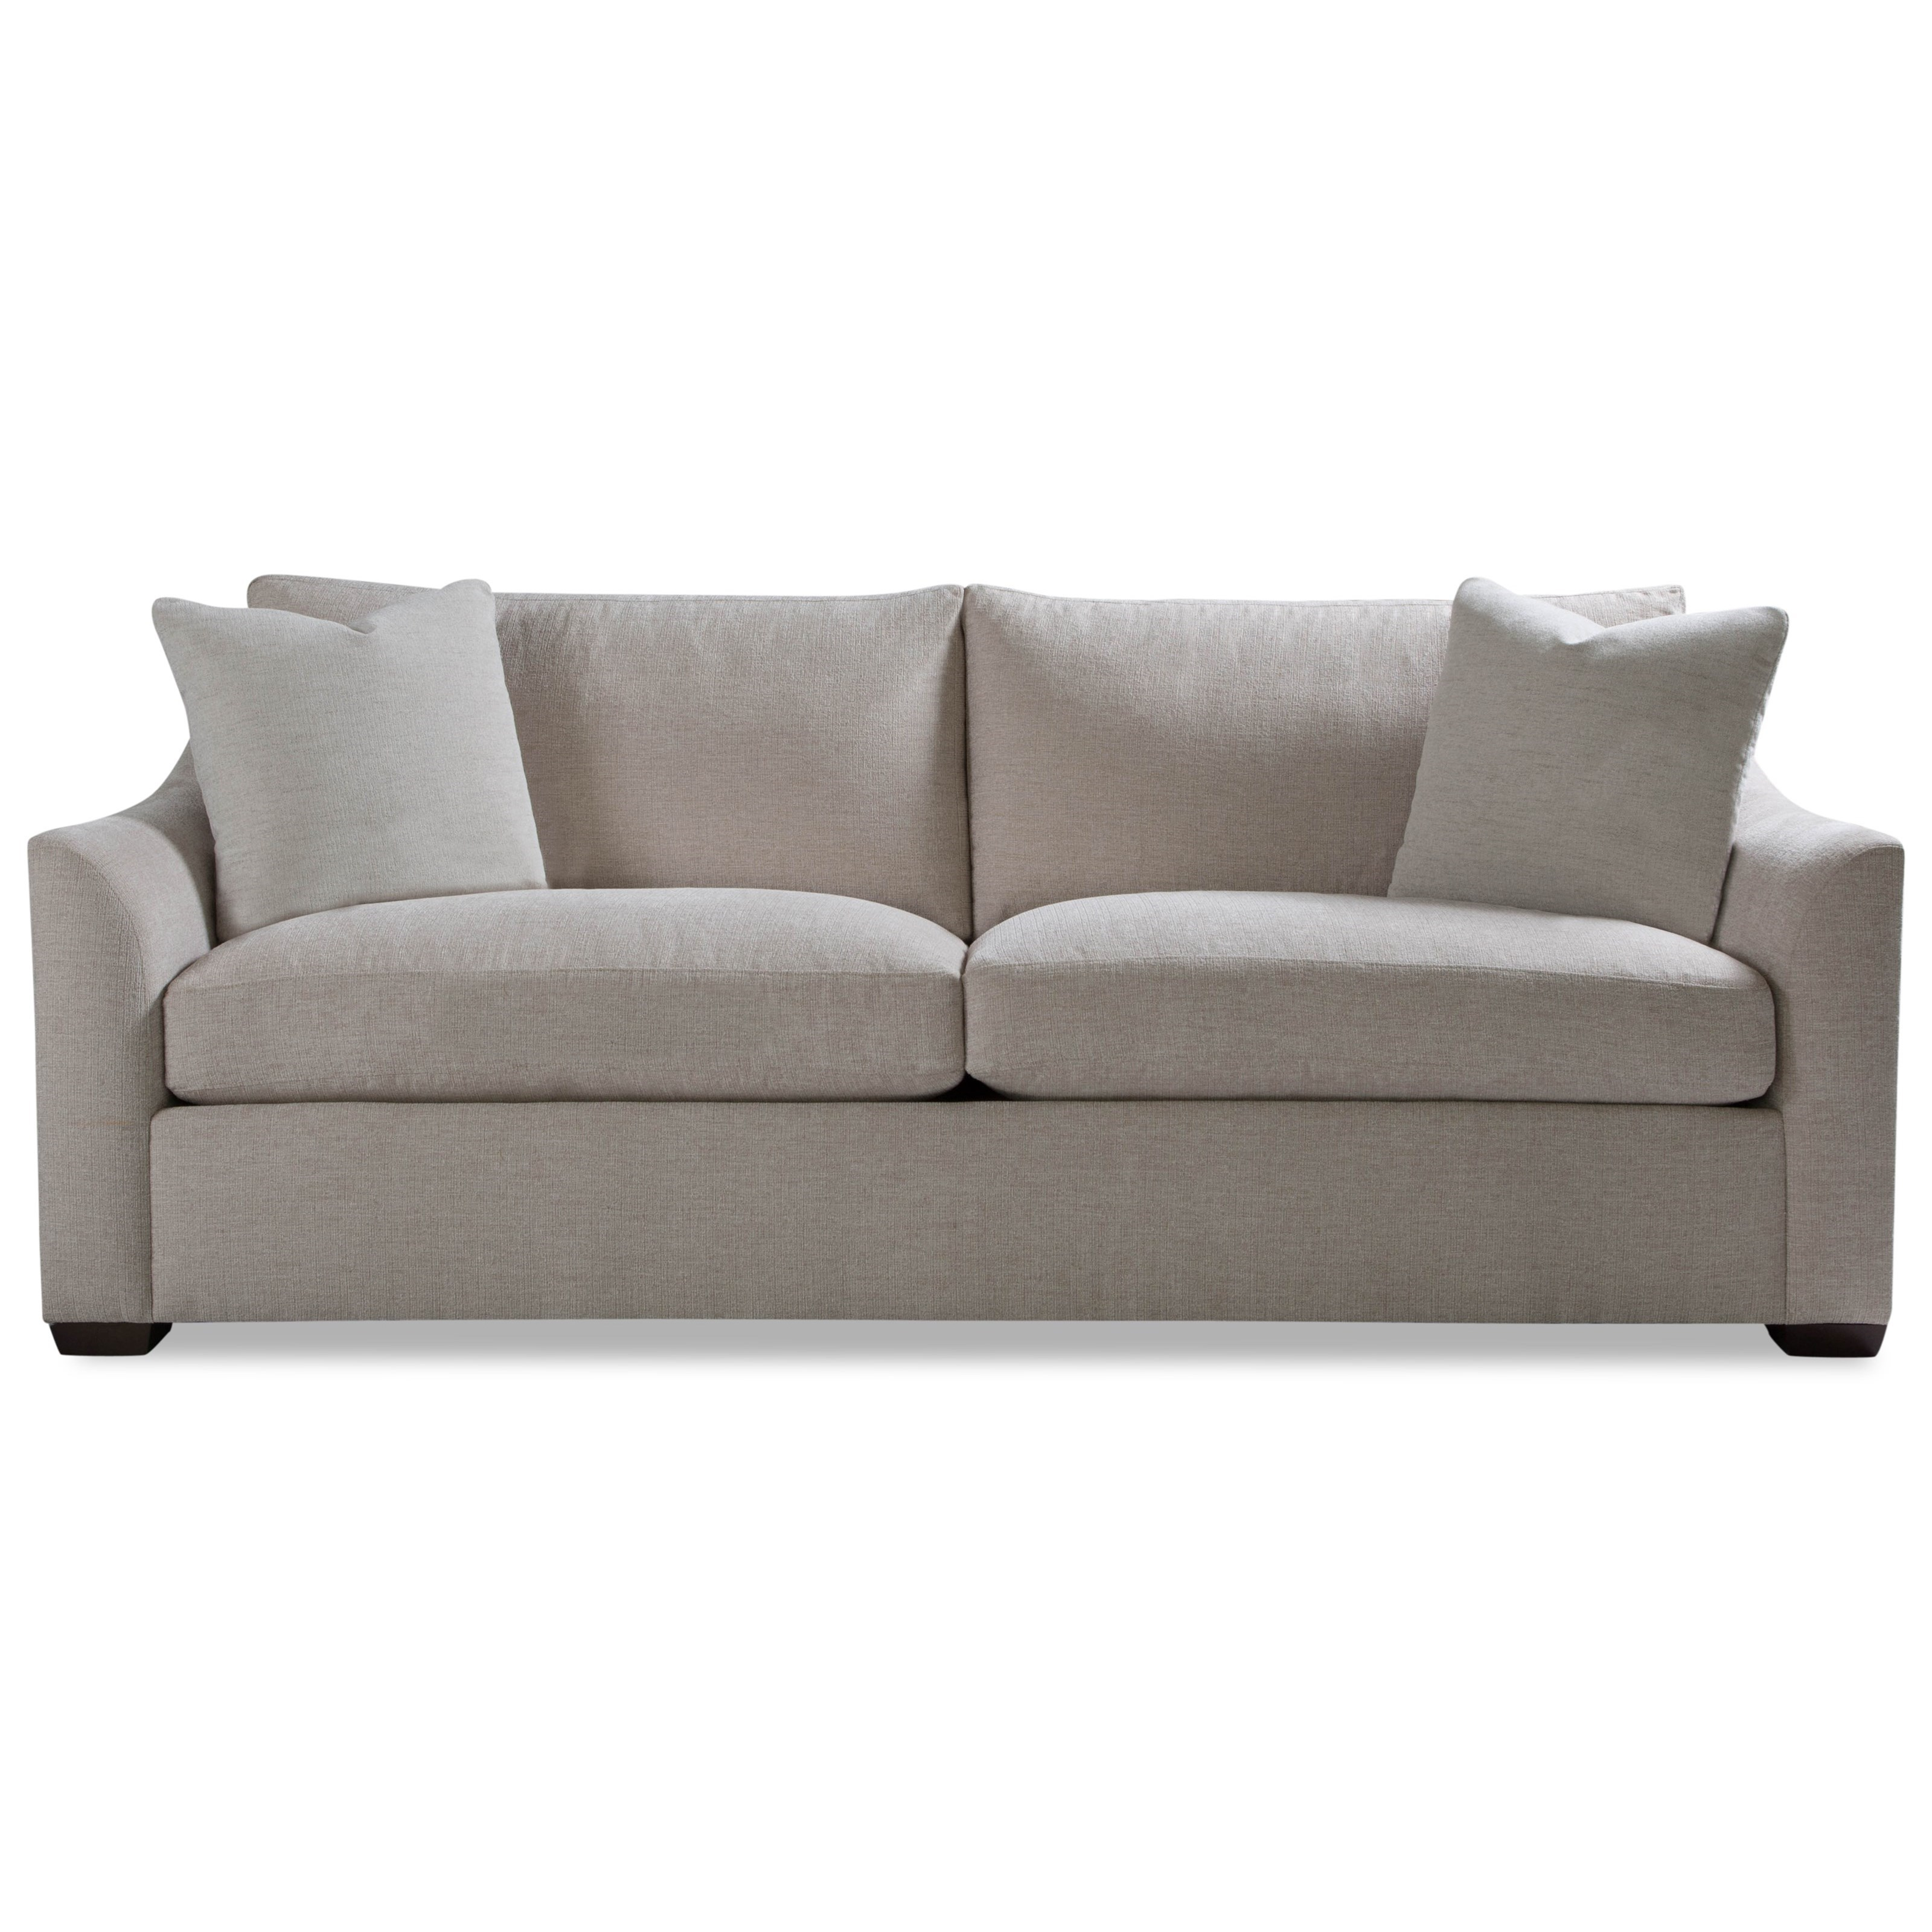 Plush Two Cushion Sofa w/ Flared Arm by Huntington House at Belfort Furniture